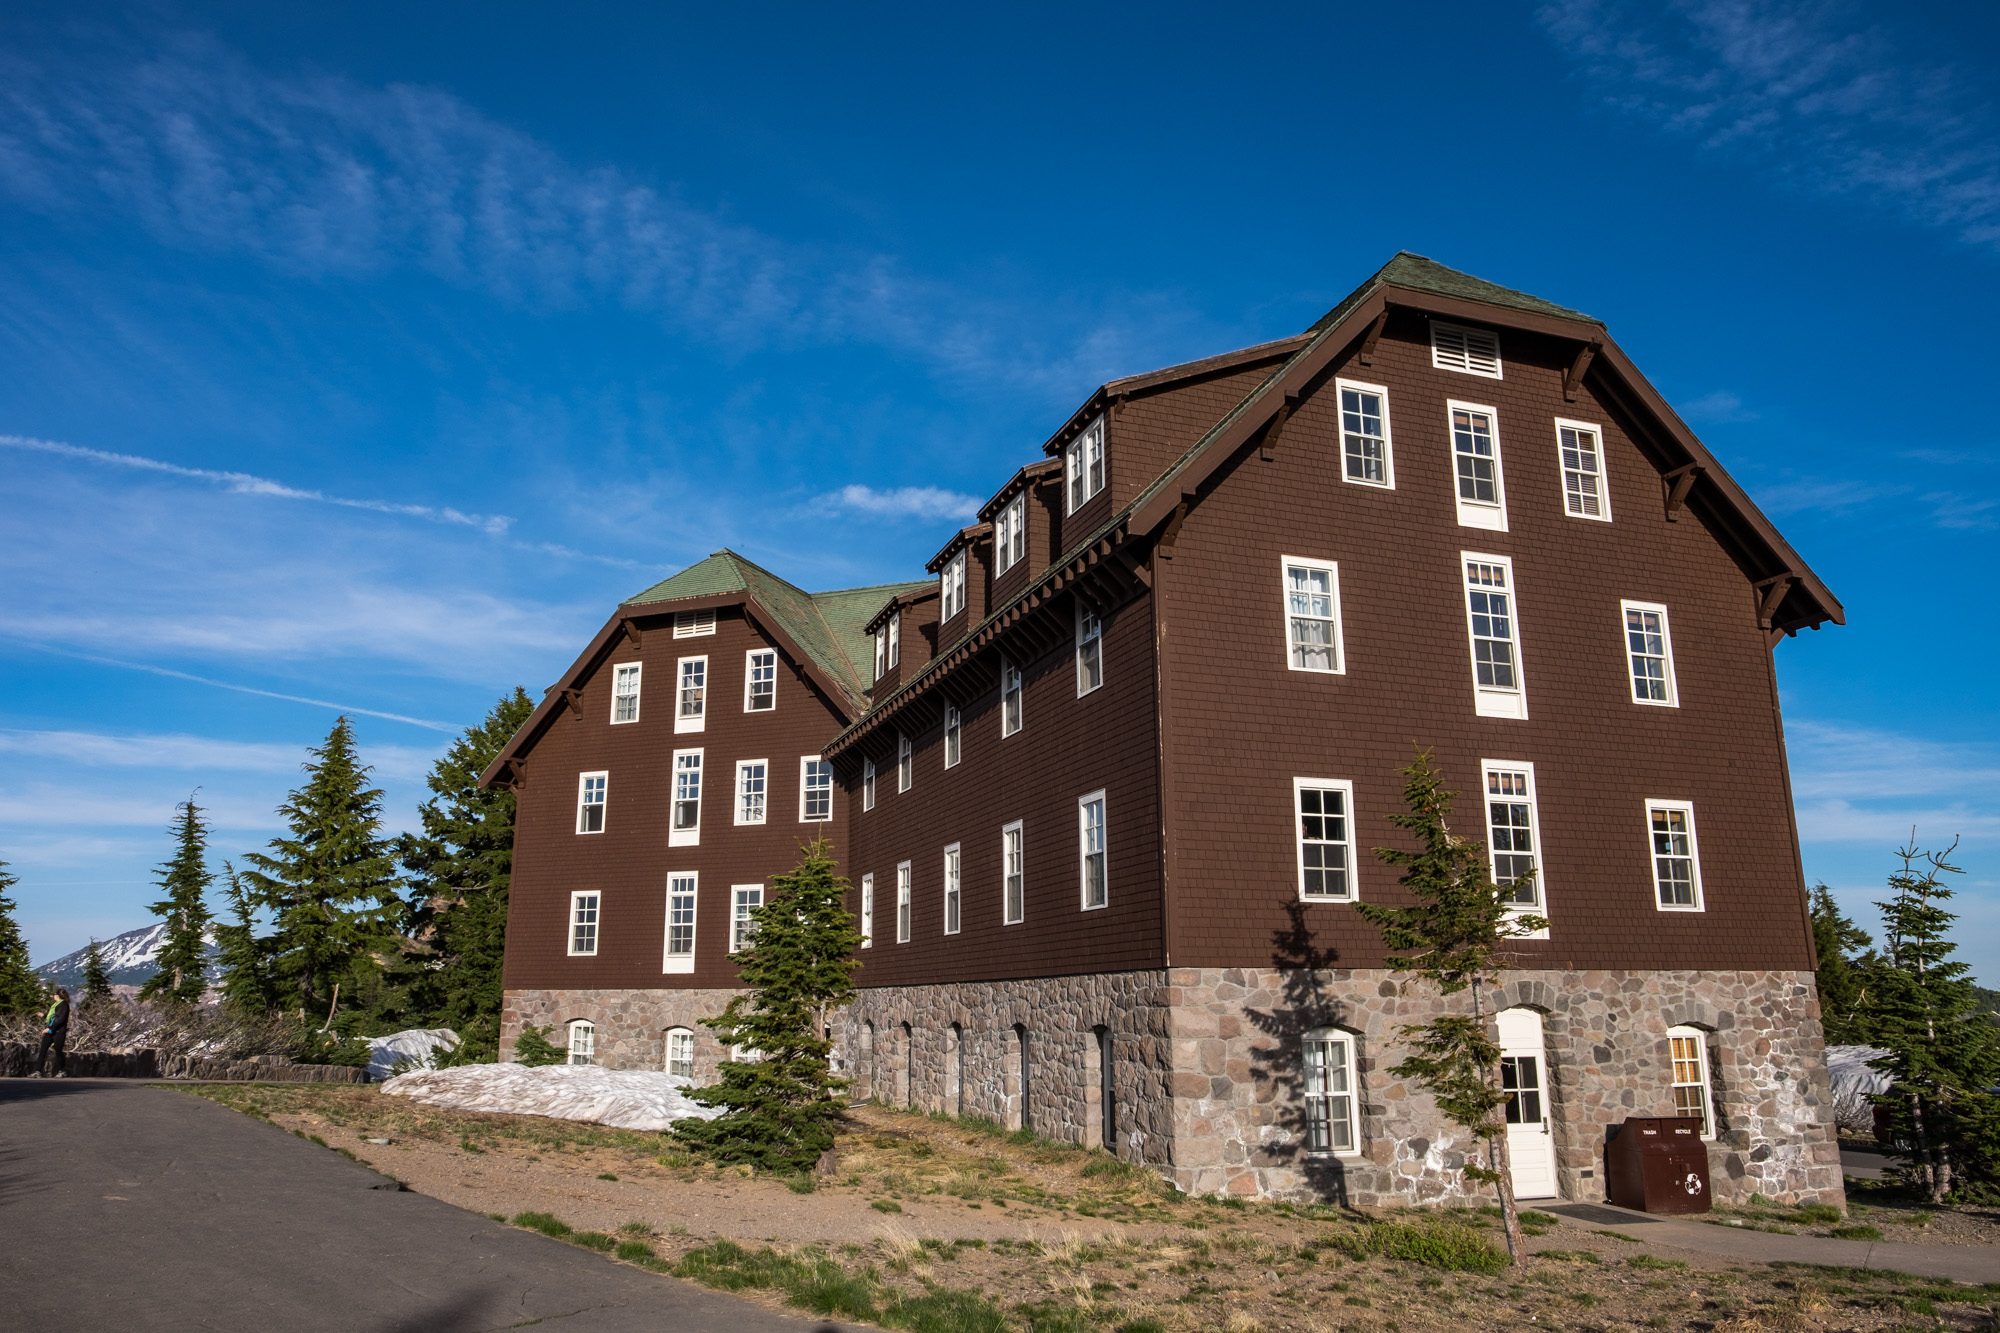 The Crater Lake Lodge is a classic, historic National Park Lodge that is 101 years old -- older than the Park Service!